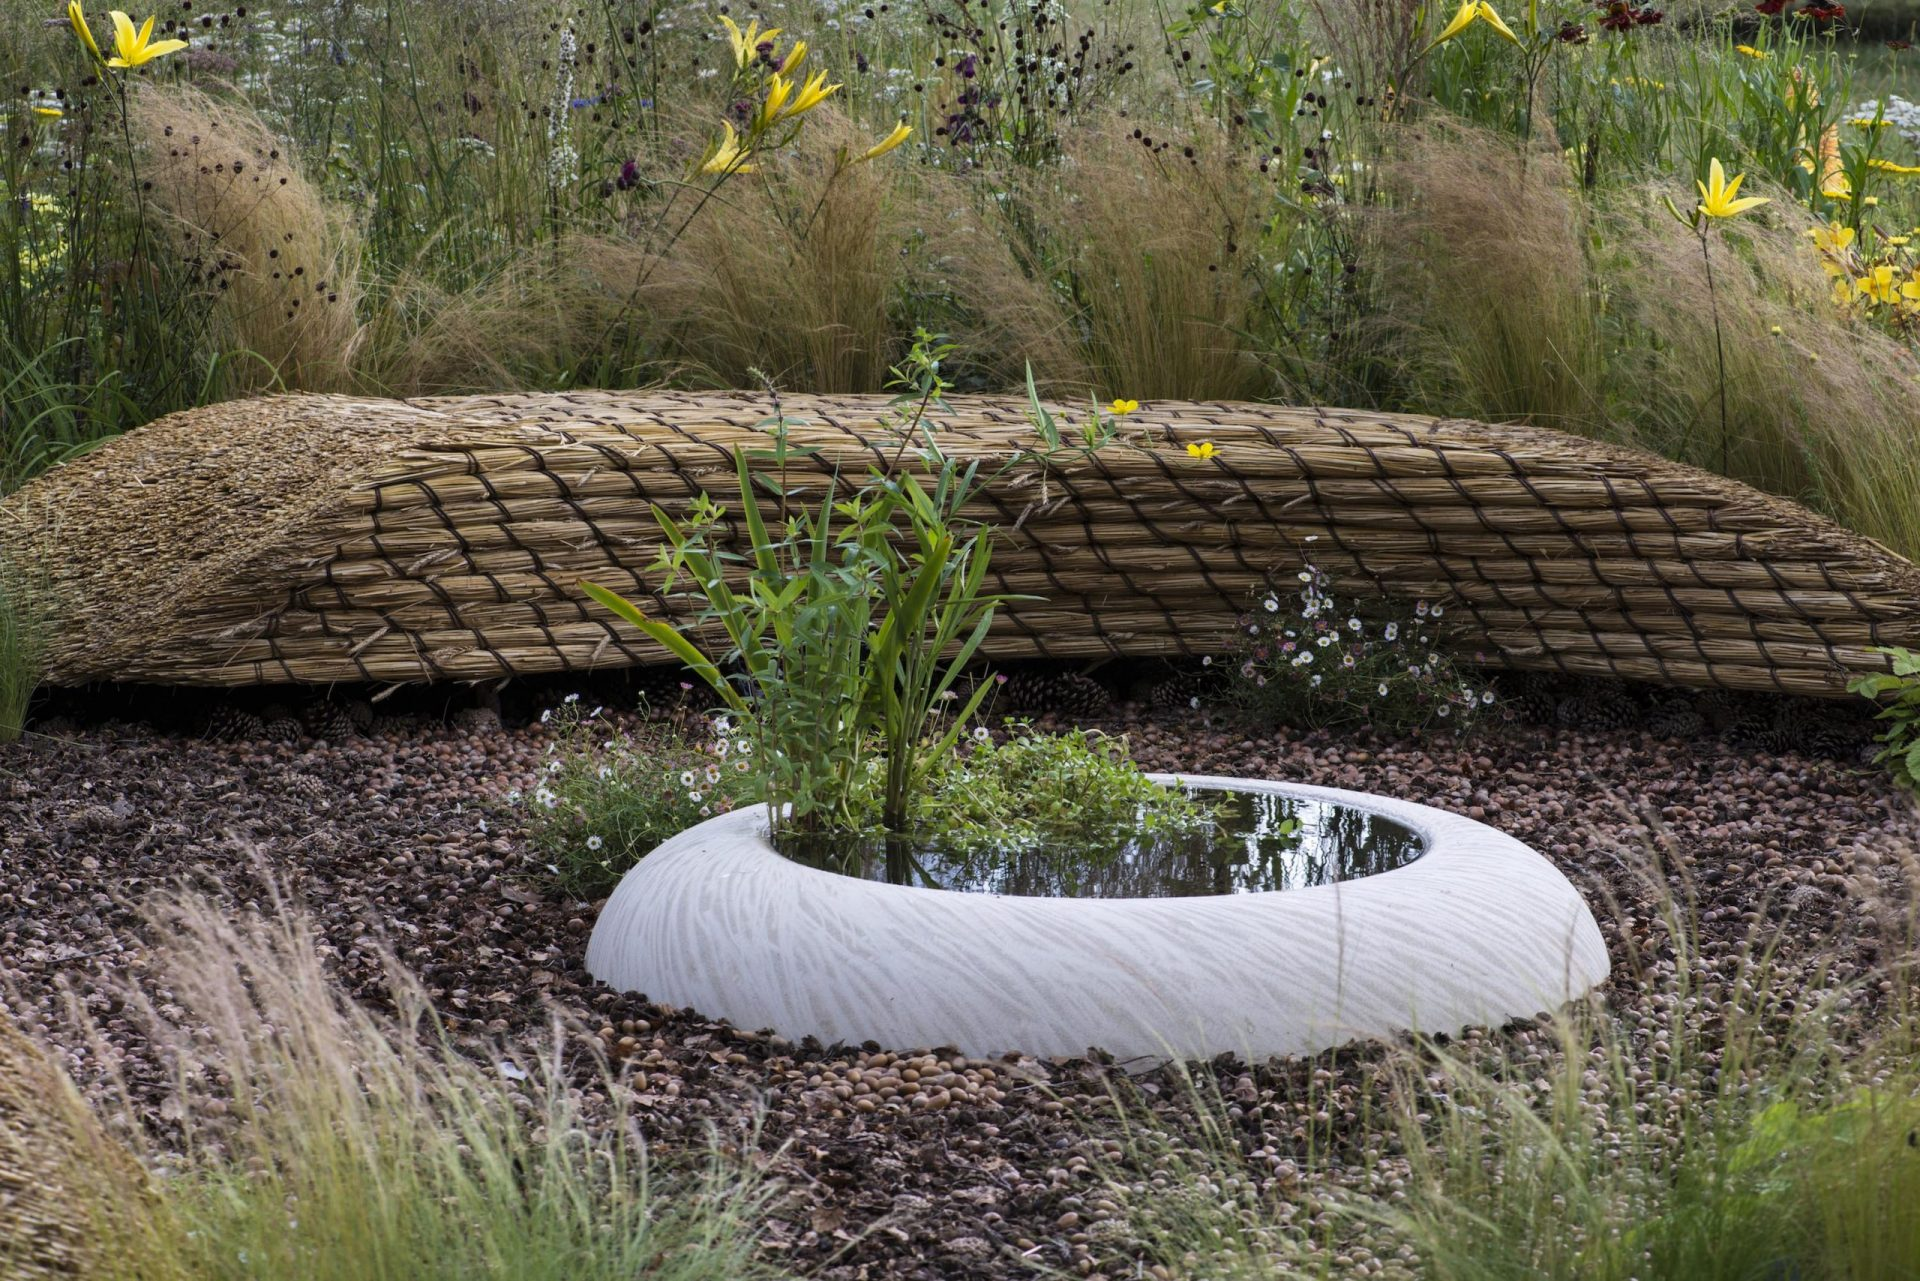 The Guardian - Going Wild at the Hampton Court Flower Show